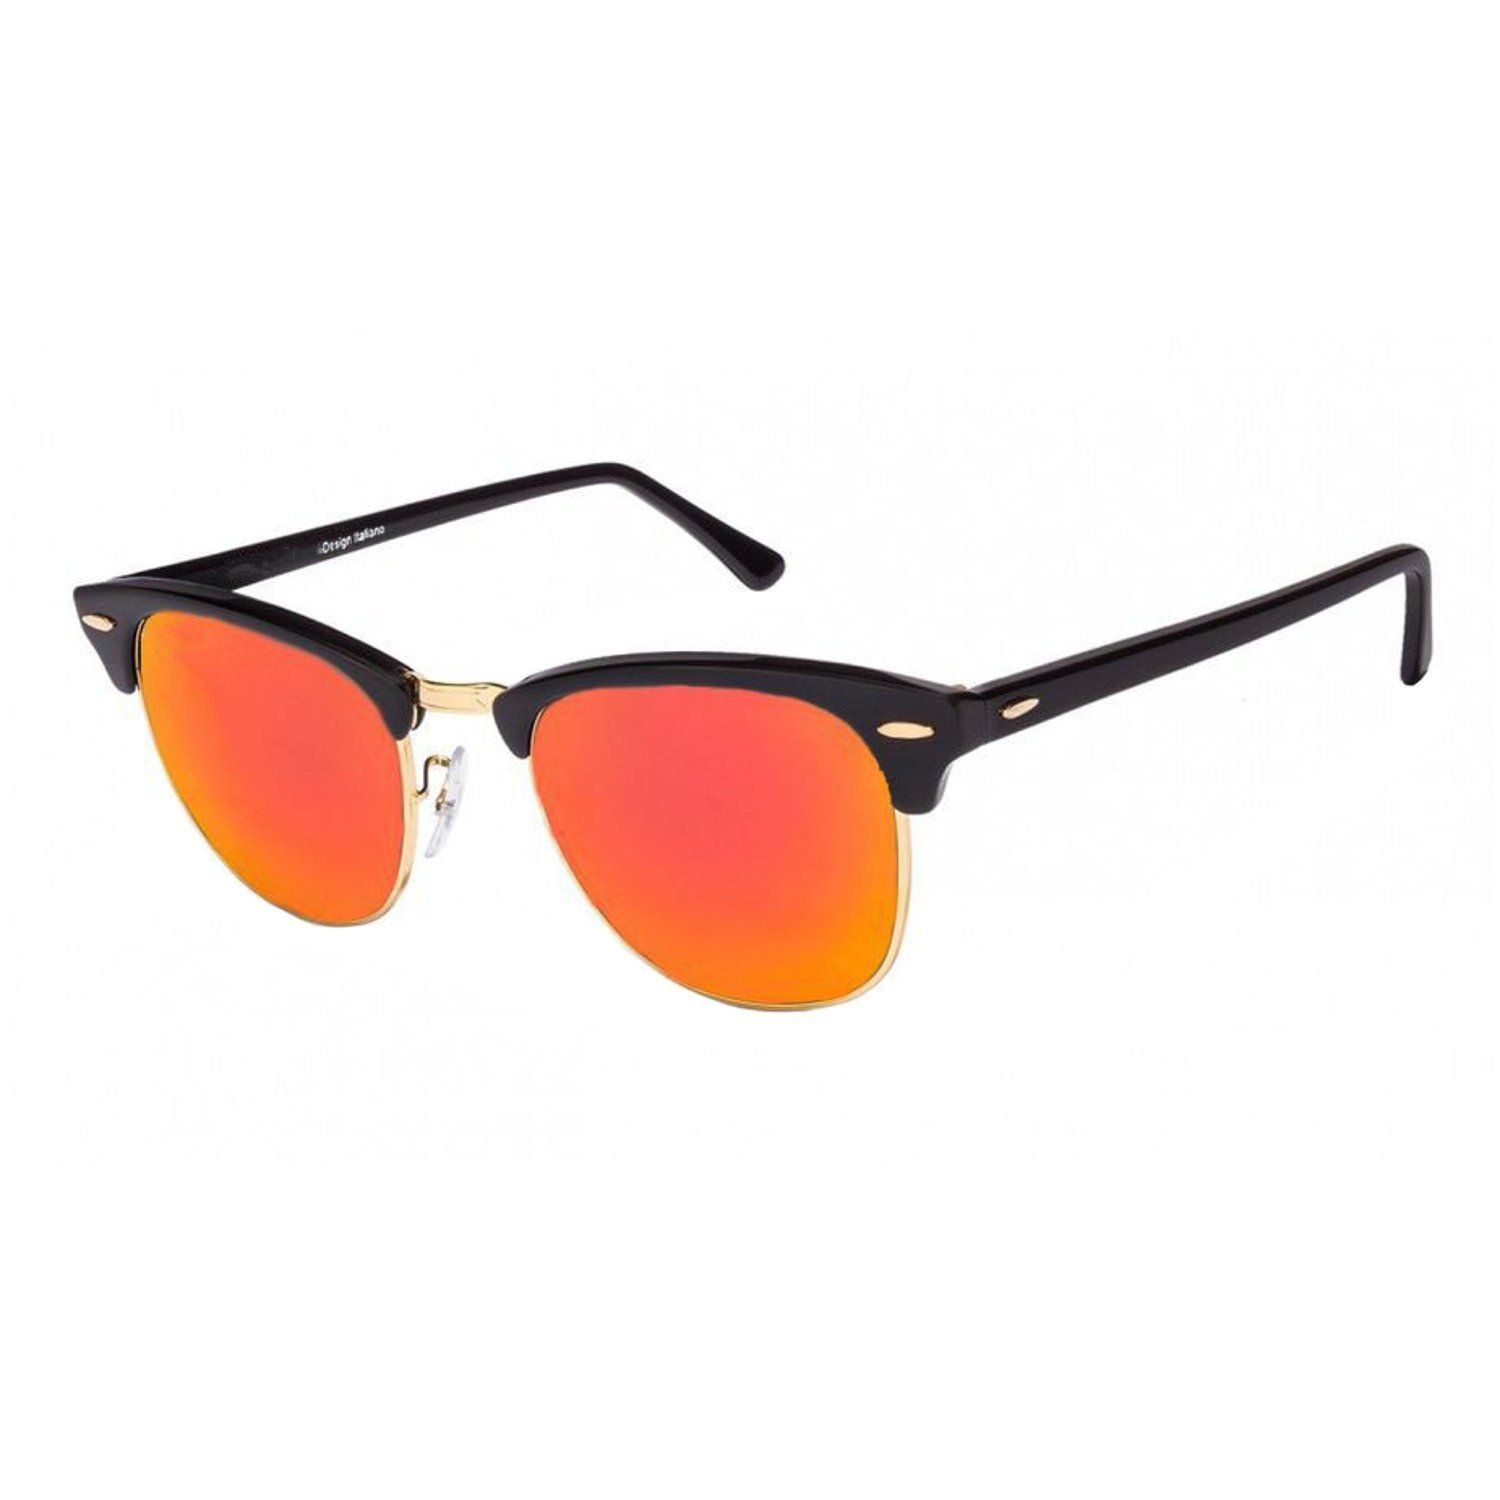 9449154771 Jazz Style Golden Black Frame Red Yellow Lens Club Master Unisex Wayfarer  Sunglasses  Amazon.in  Clothing   Accessories